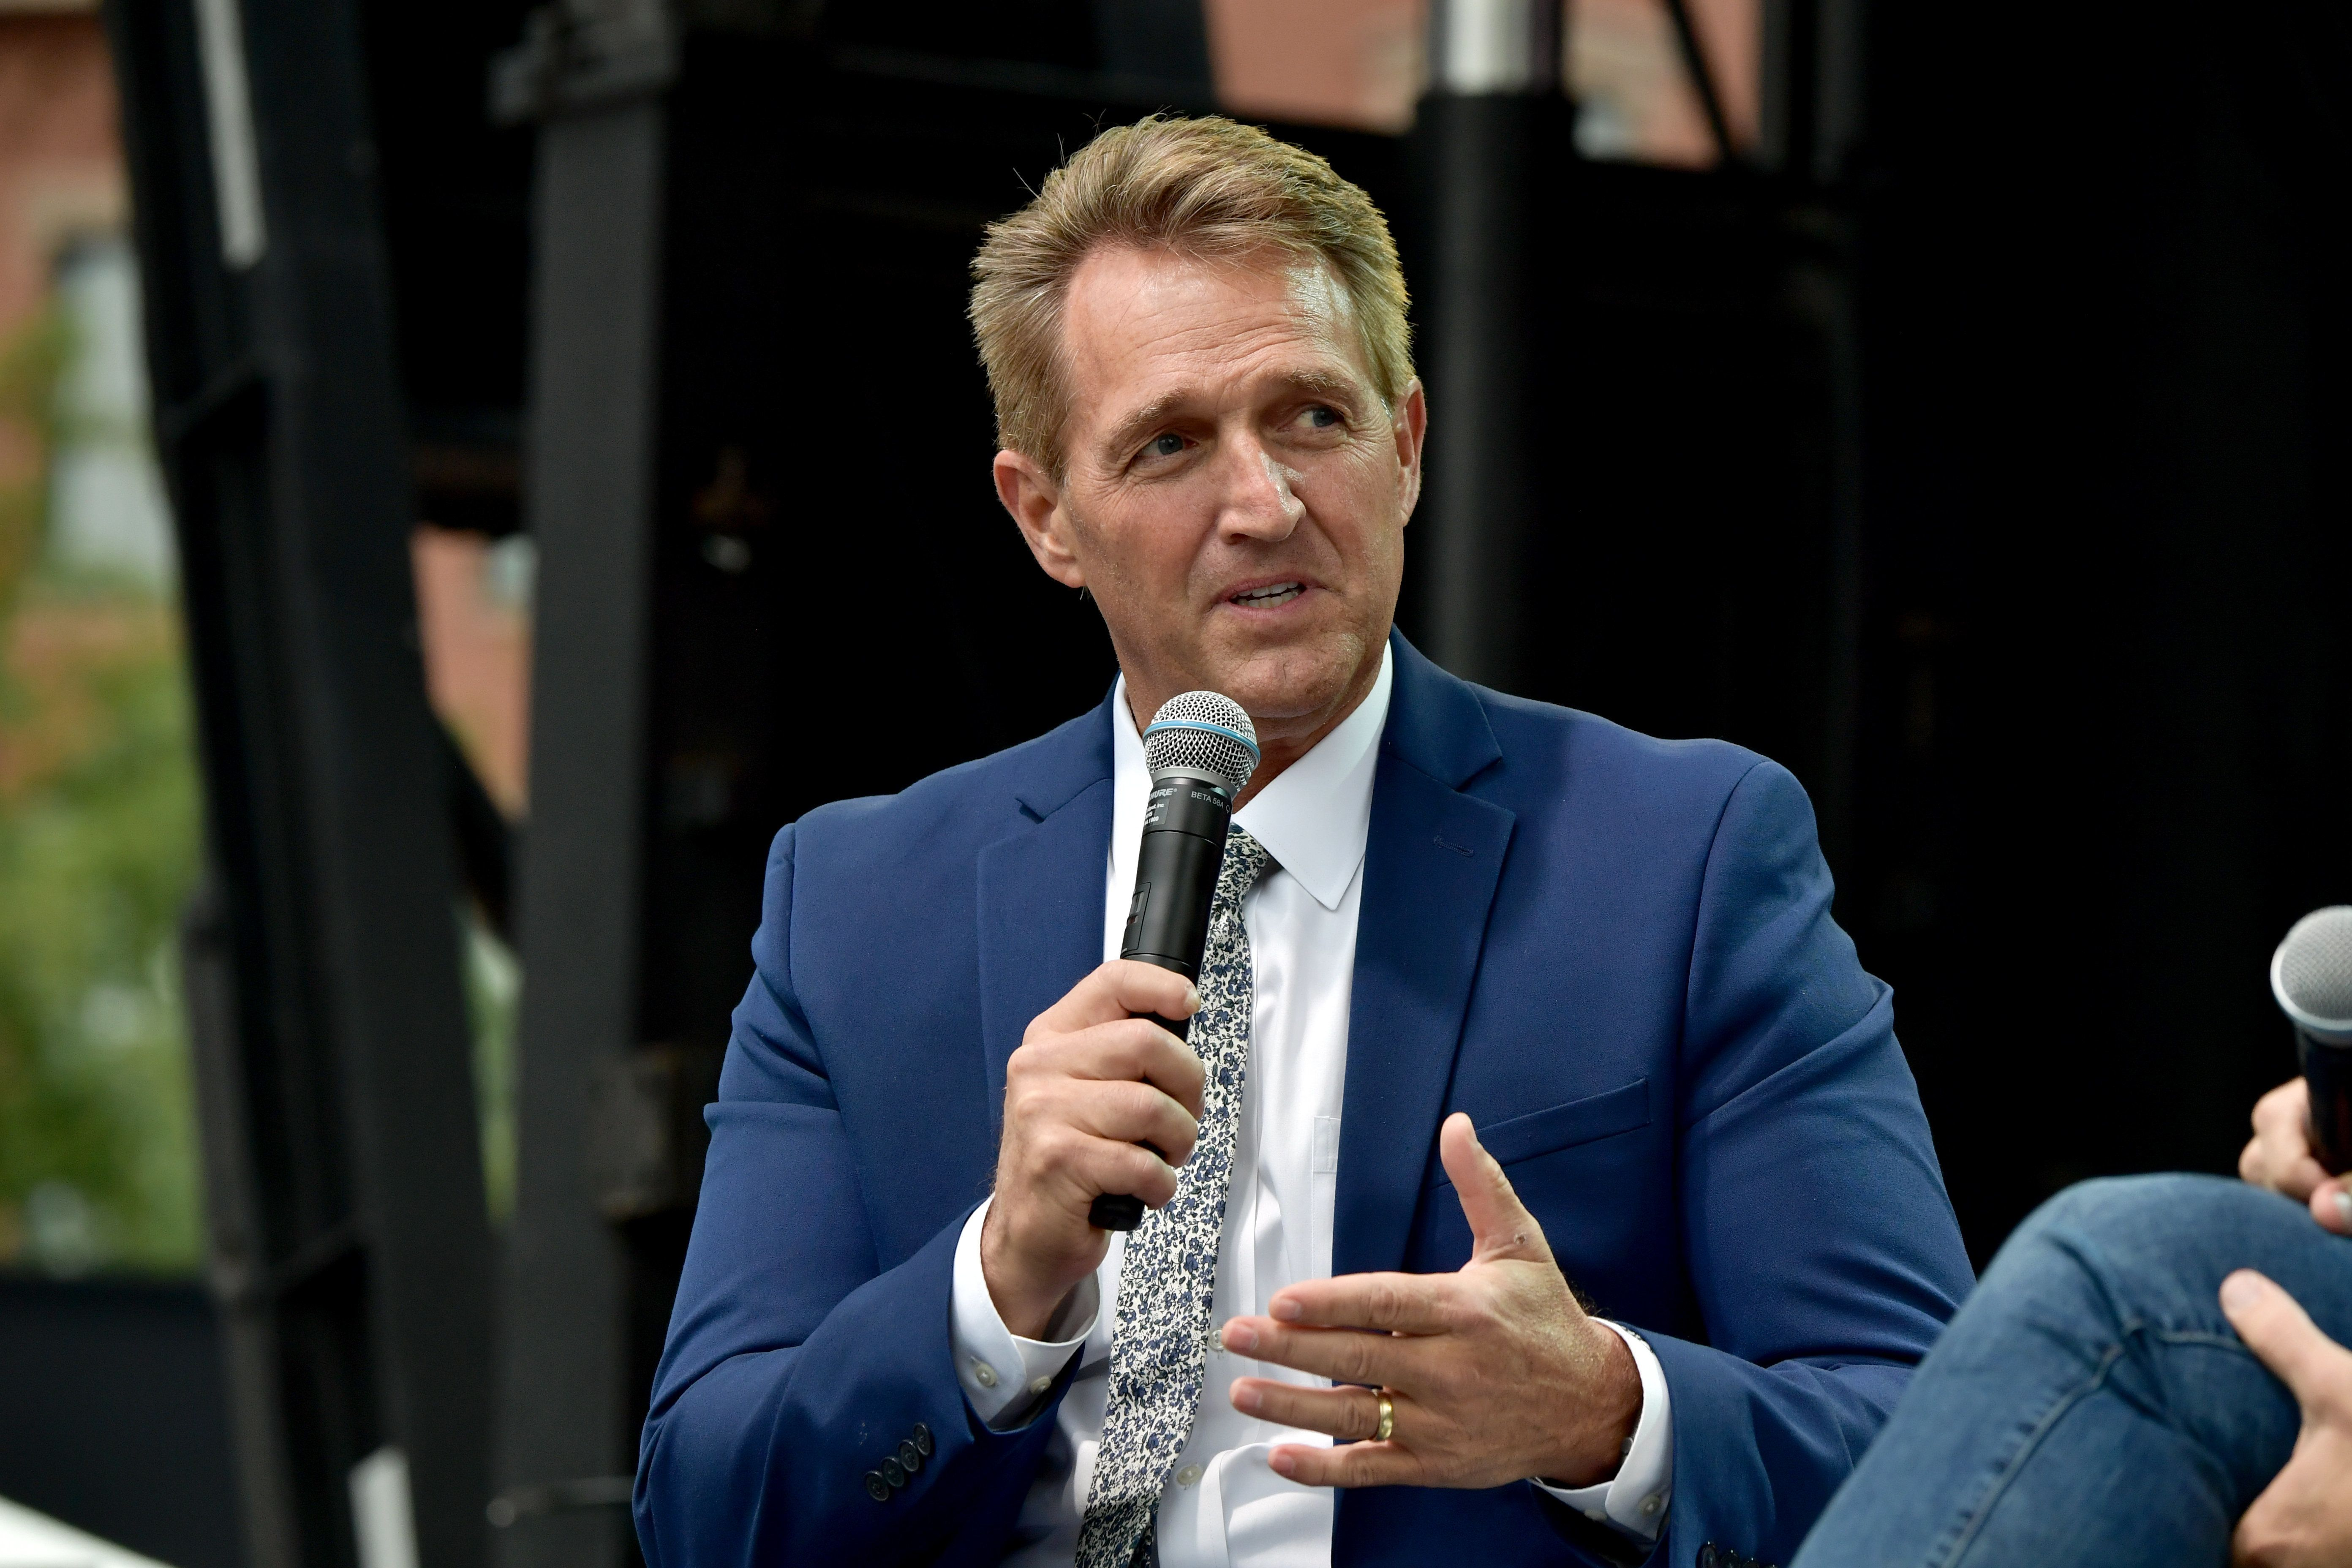 BOSTON, MA - OCTOBER 01: Sen. Jeff Flake (R-AZ) speaks at Forbes Under 30 at 'Lunch with Jeff Flake' at Boston City Hall Plaza on October 1, 2018 in Boston, Massachusetts. There was a rally outside the event calling on Sen. Flake to reject Judge Brett Kavanaugh's nomination to the Supreme Court. Flake recently called for a one week pause in the confirmation process to give the FBI more time to investigate sexual assault allegations. (Photo by Paul Marotta/Getty Images)